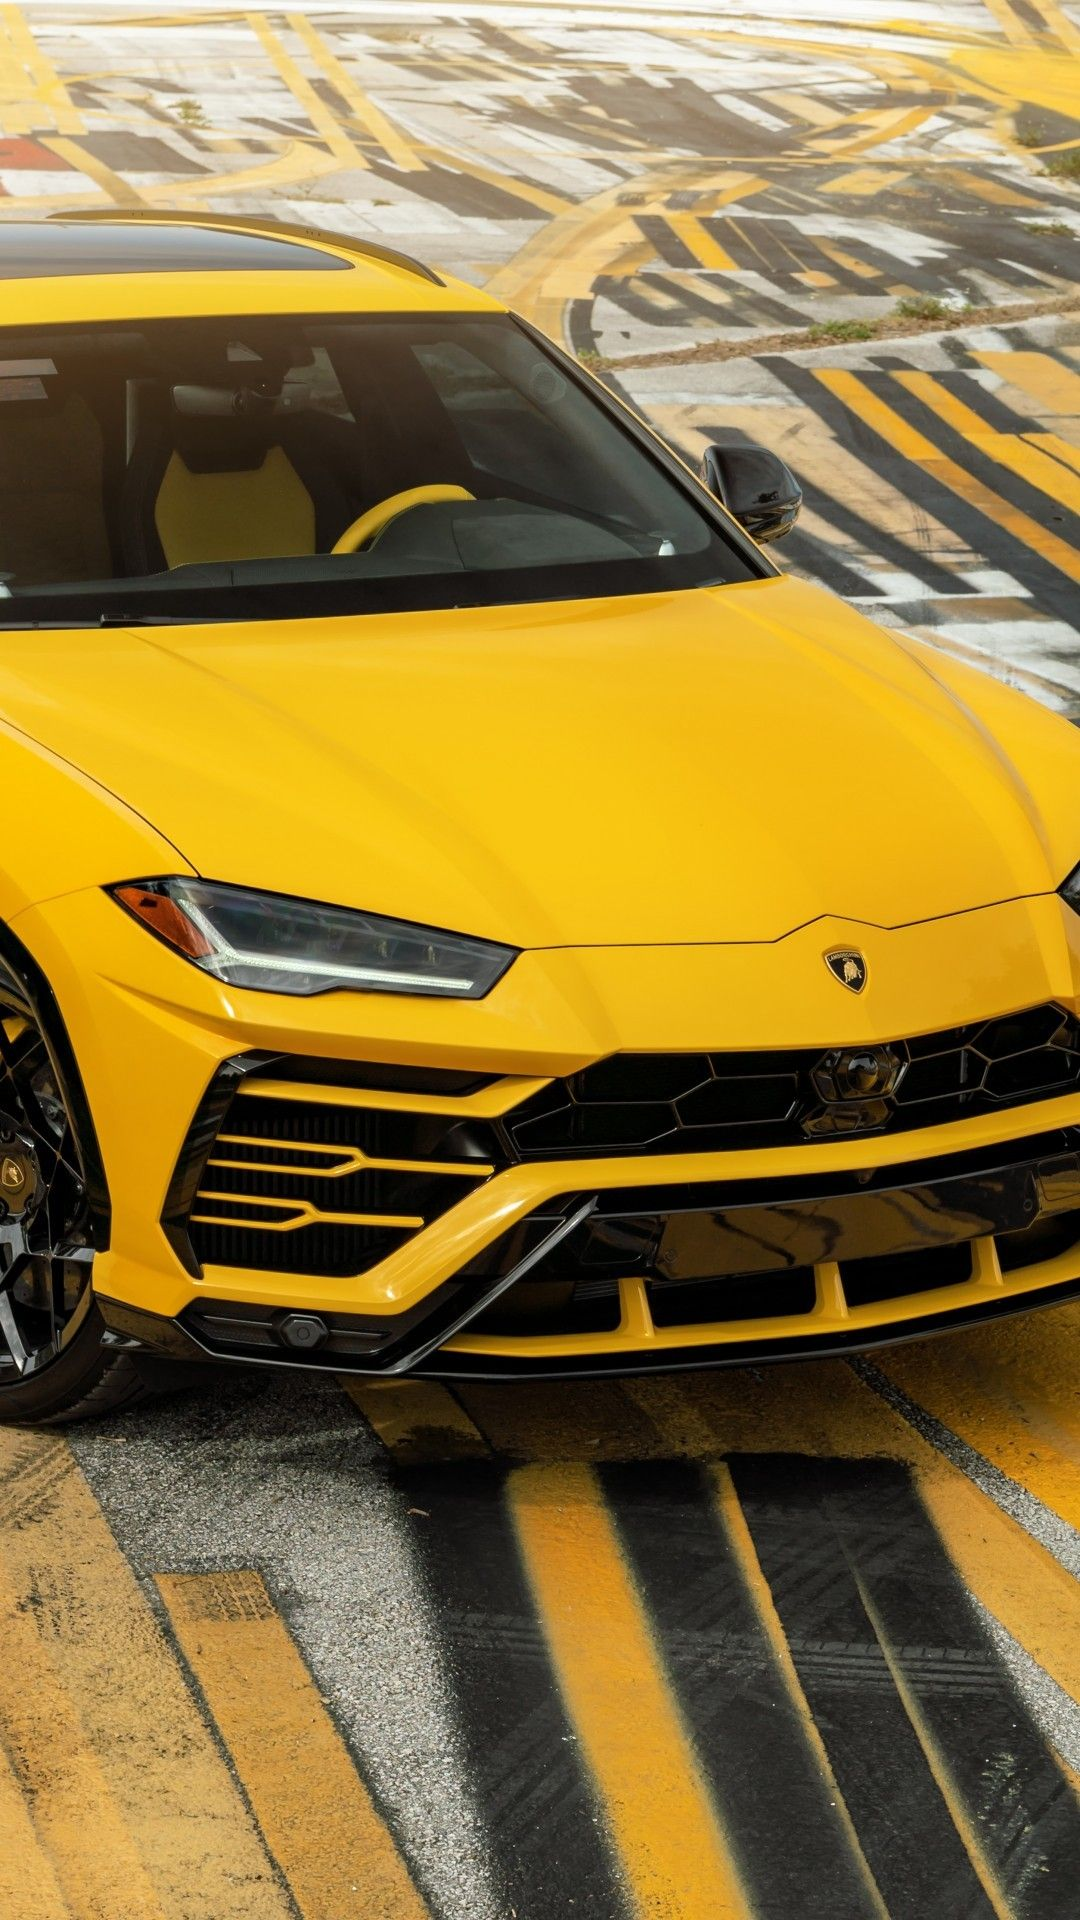 Download 1080x1920 Lamborghini Urus Yellow Suv Cars Wallpapers